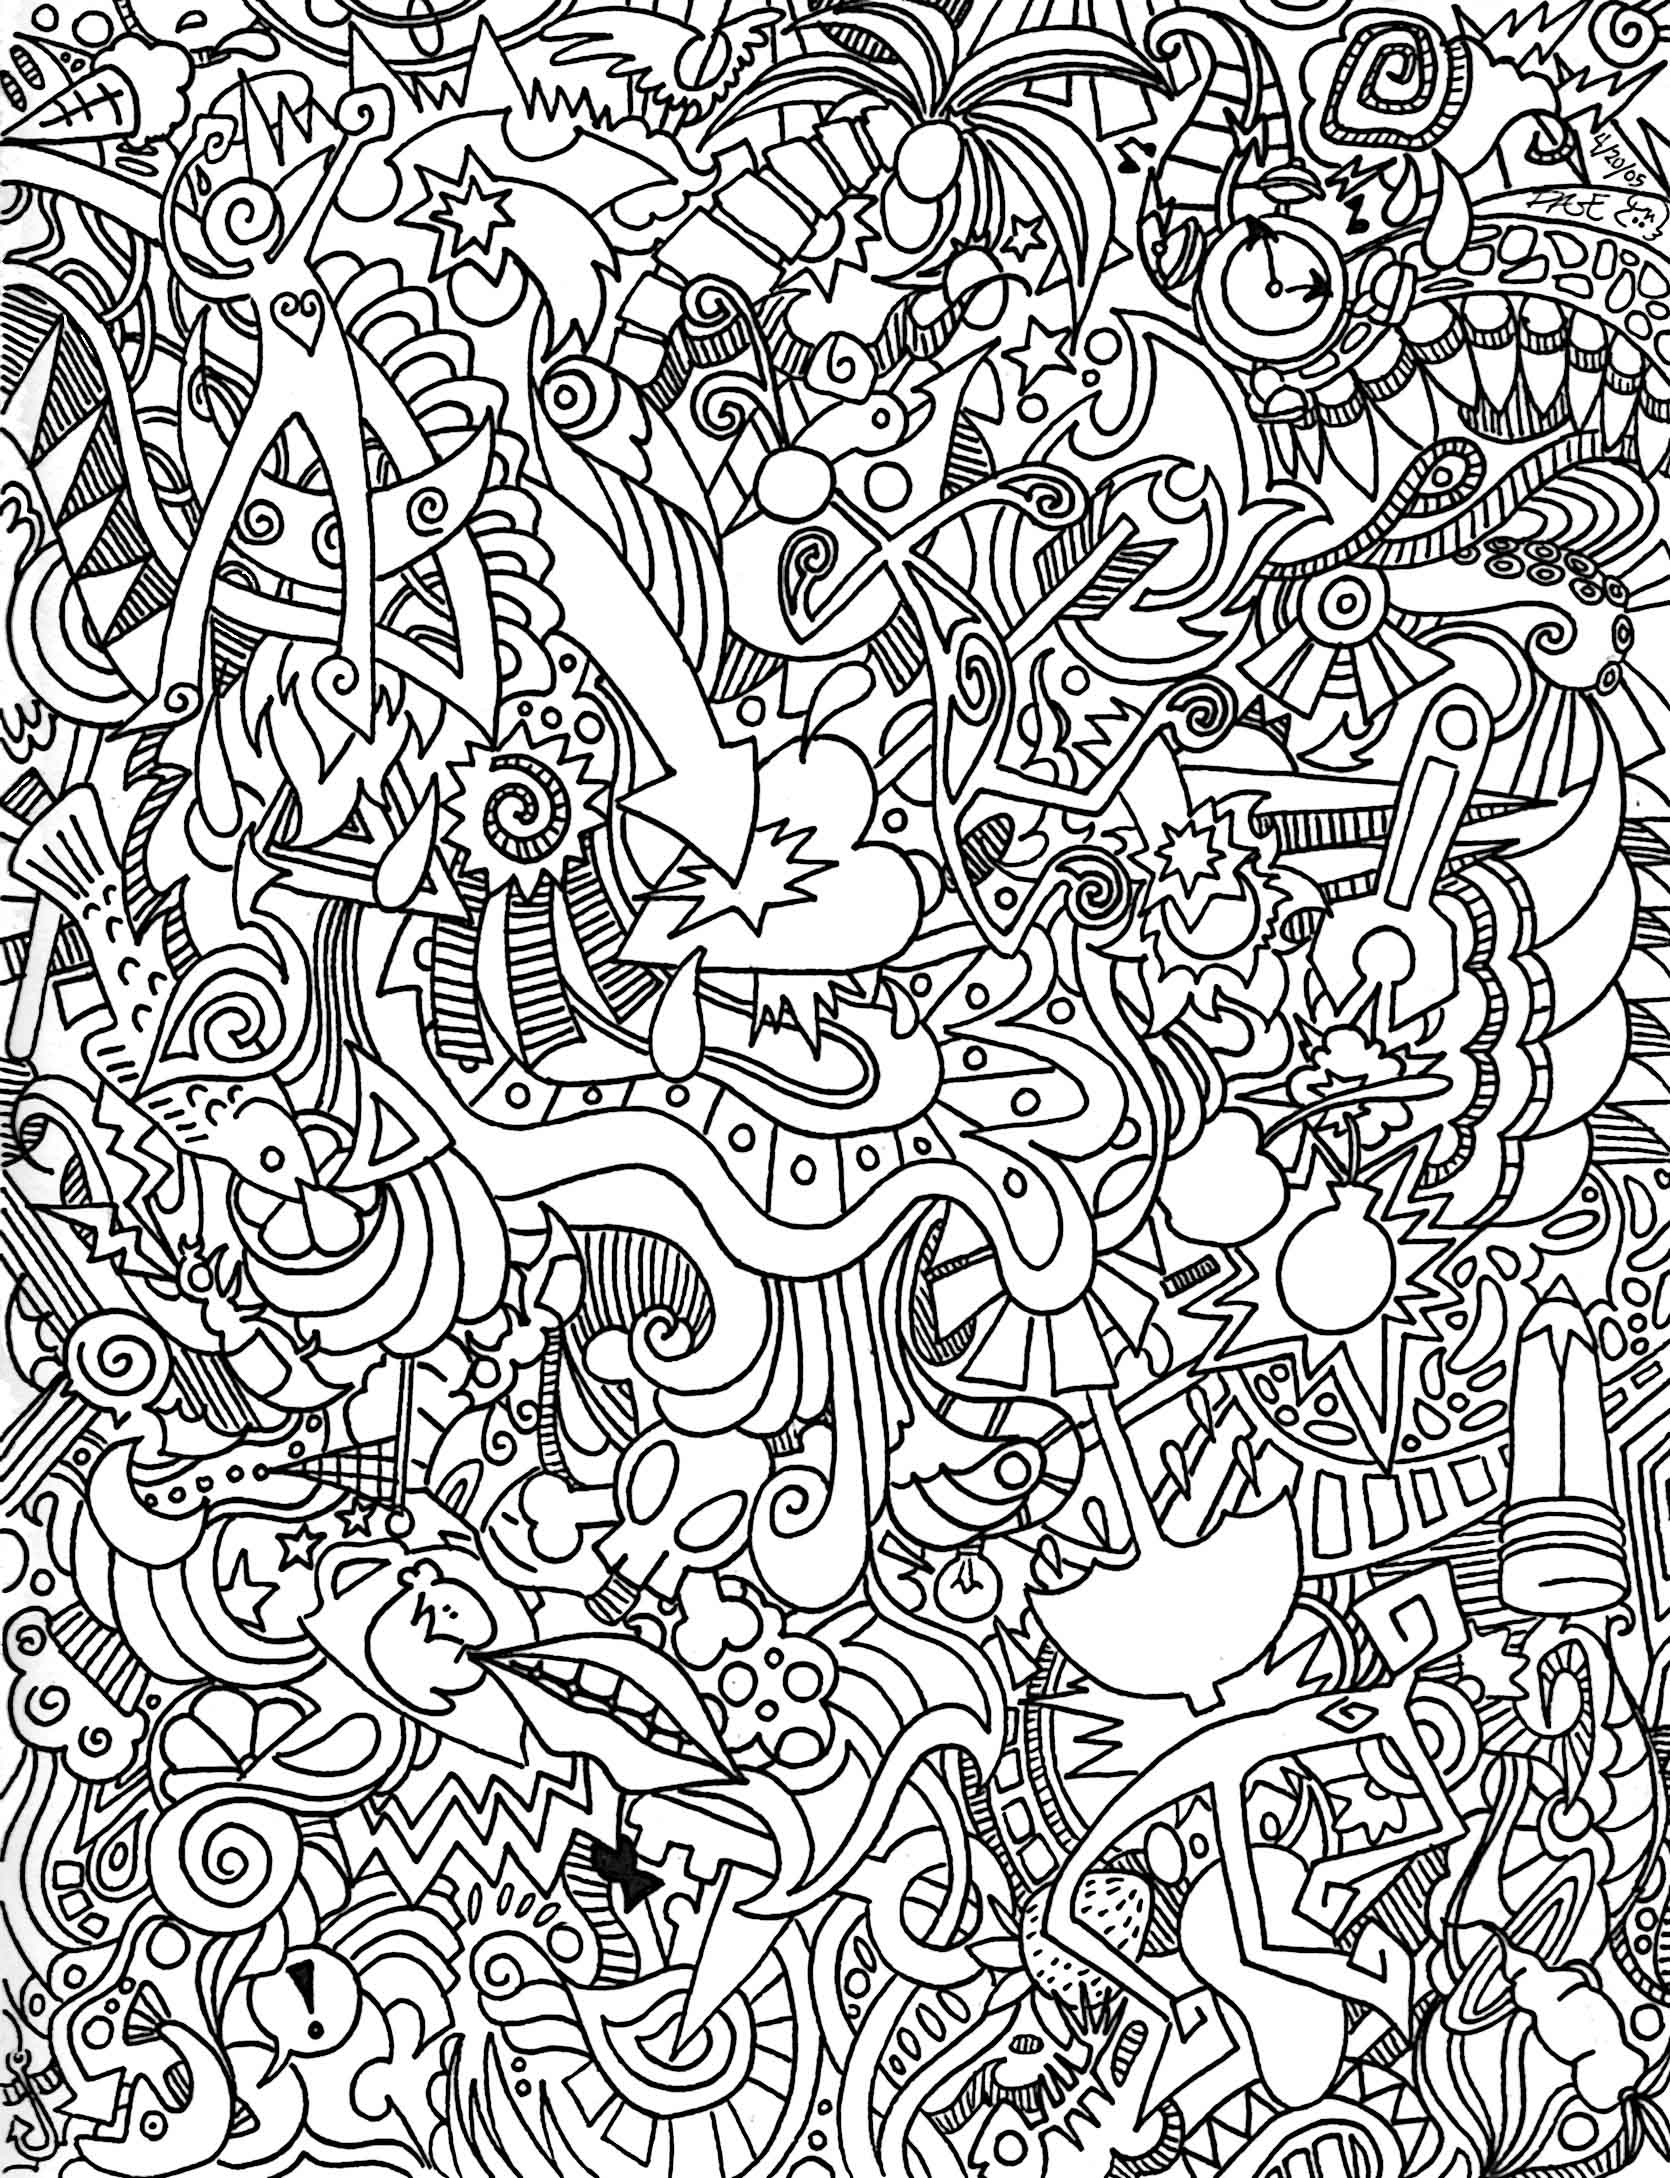 coloring book for adults printable free printable coloring pages for adults swear words coloring book printable adults for